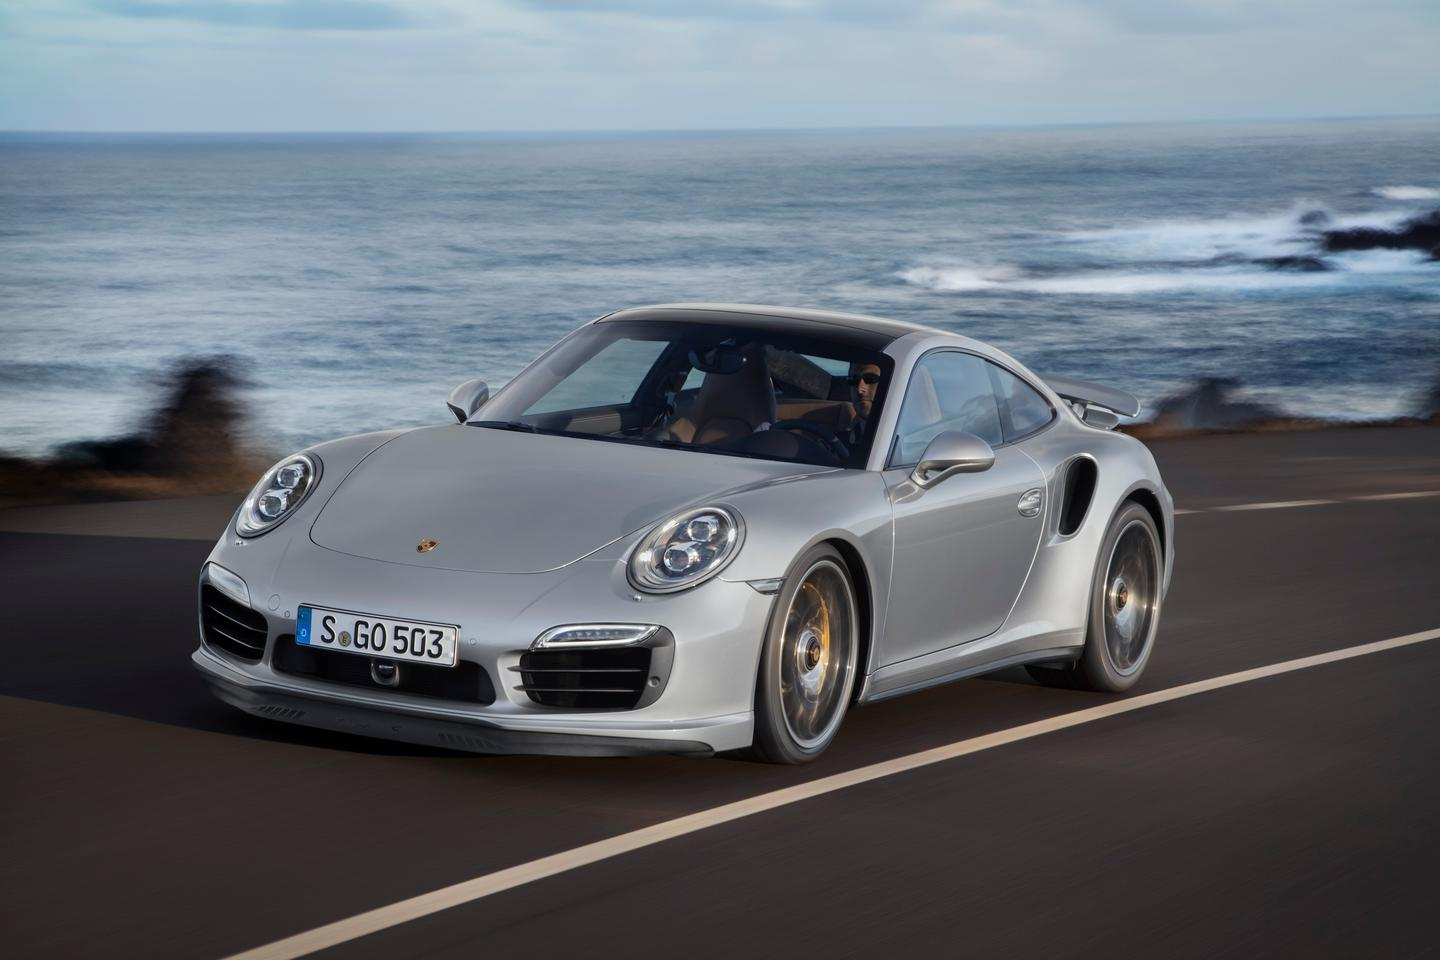 Porsche Traction Management manages power and torque to both front and rear wheels